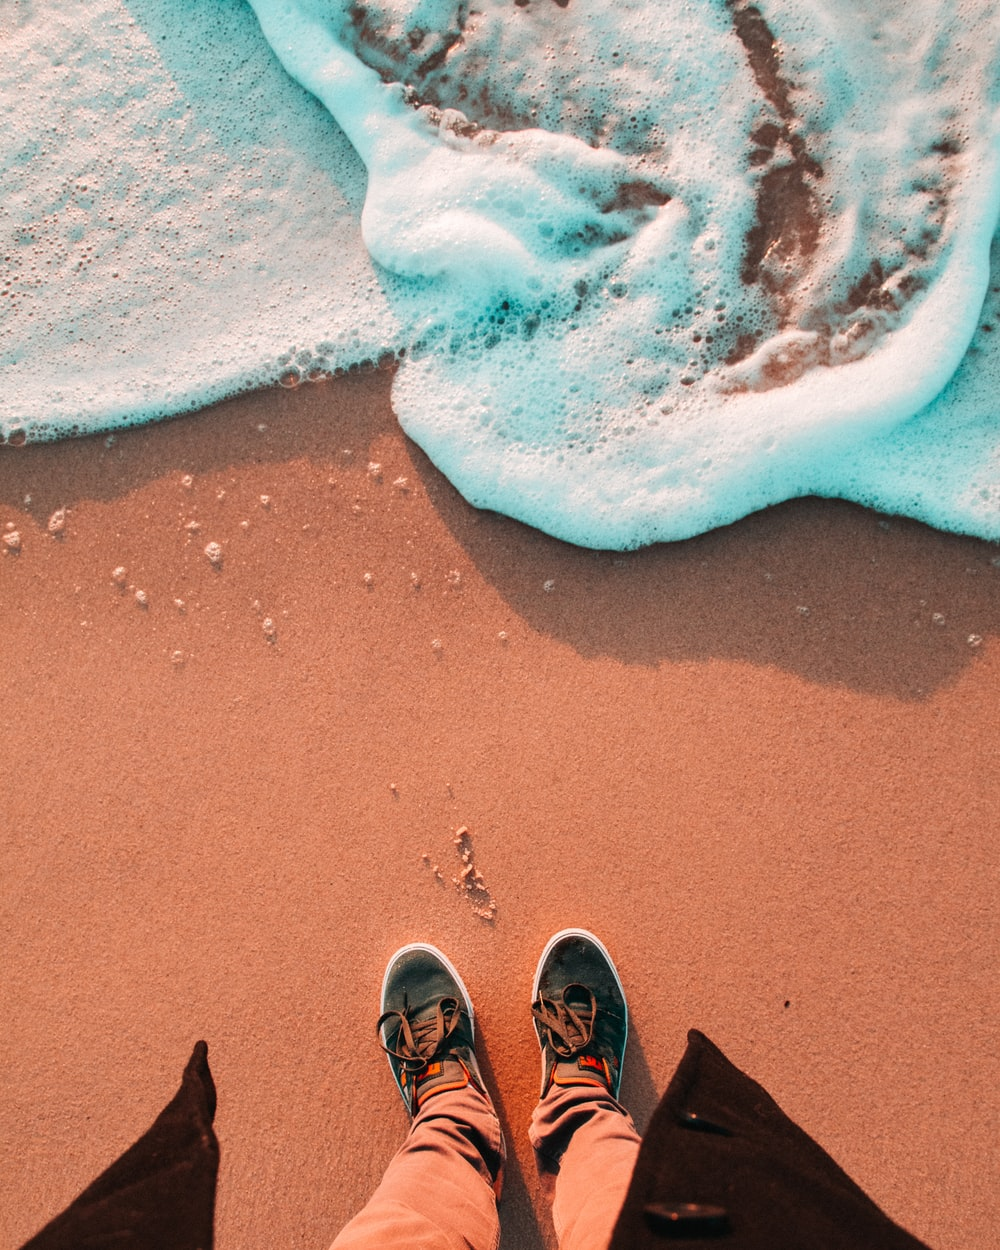 person wearing black shoes standing in front of seashore waves